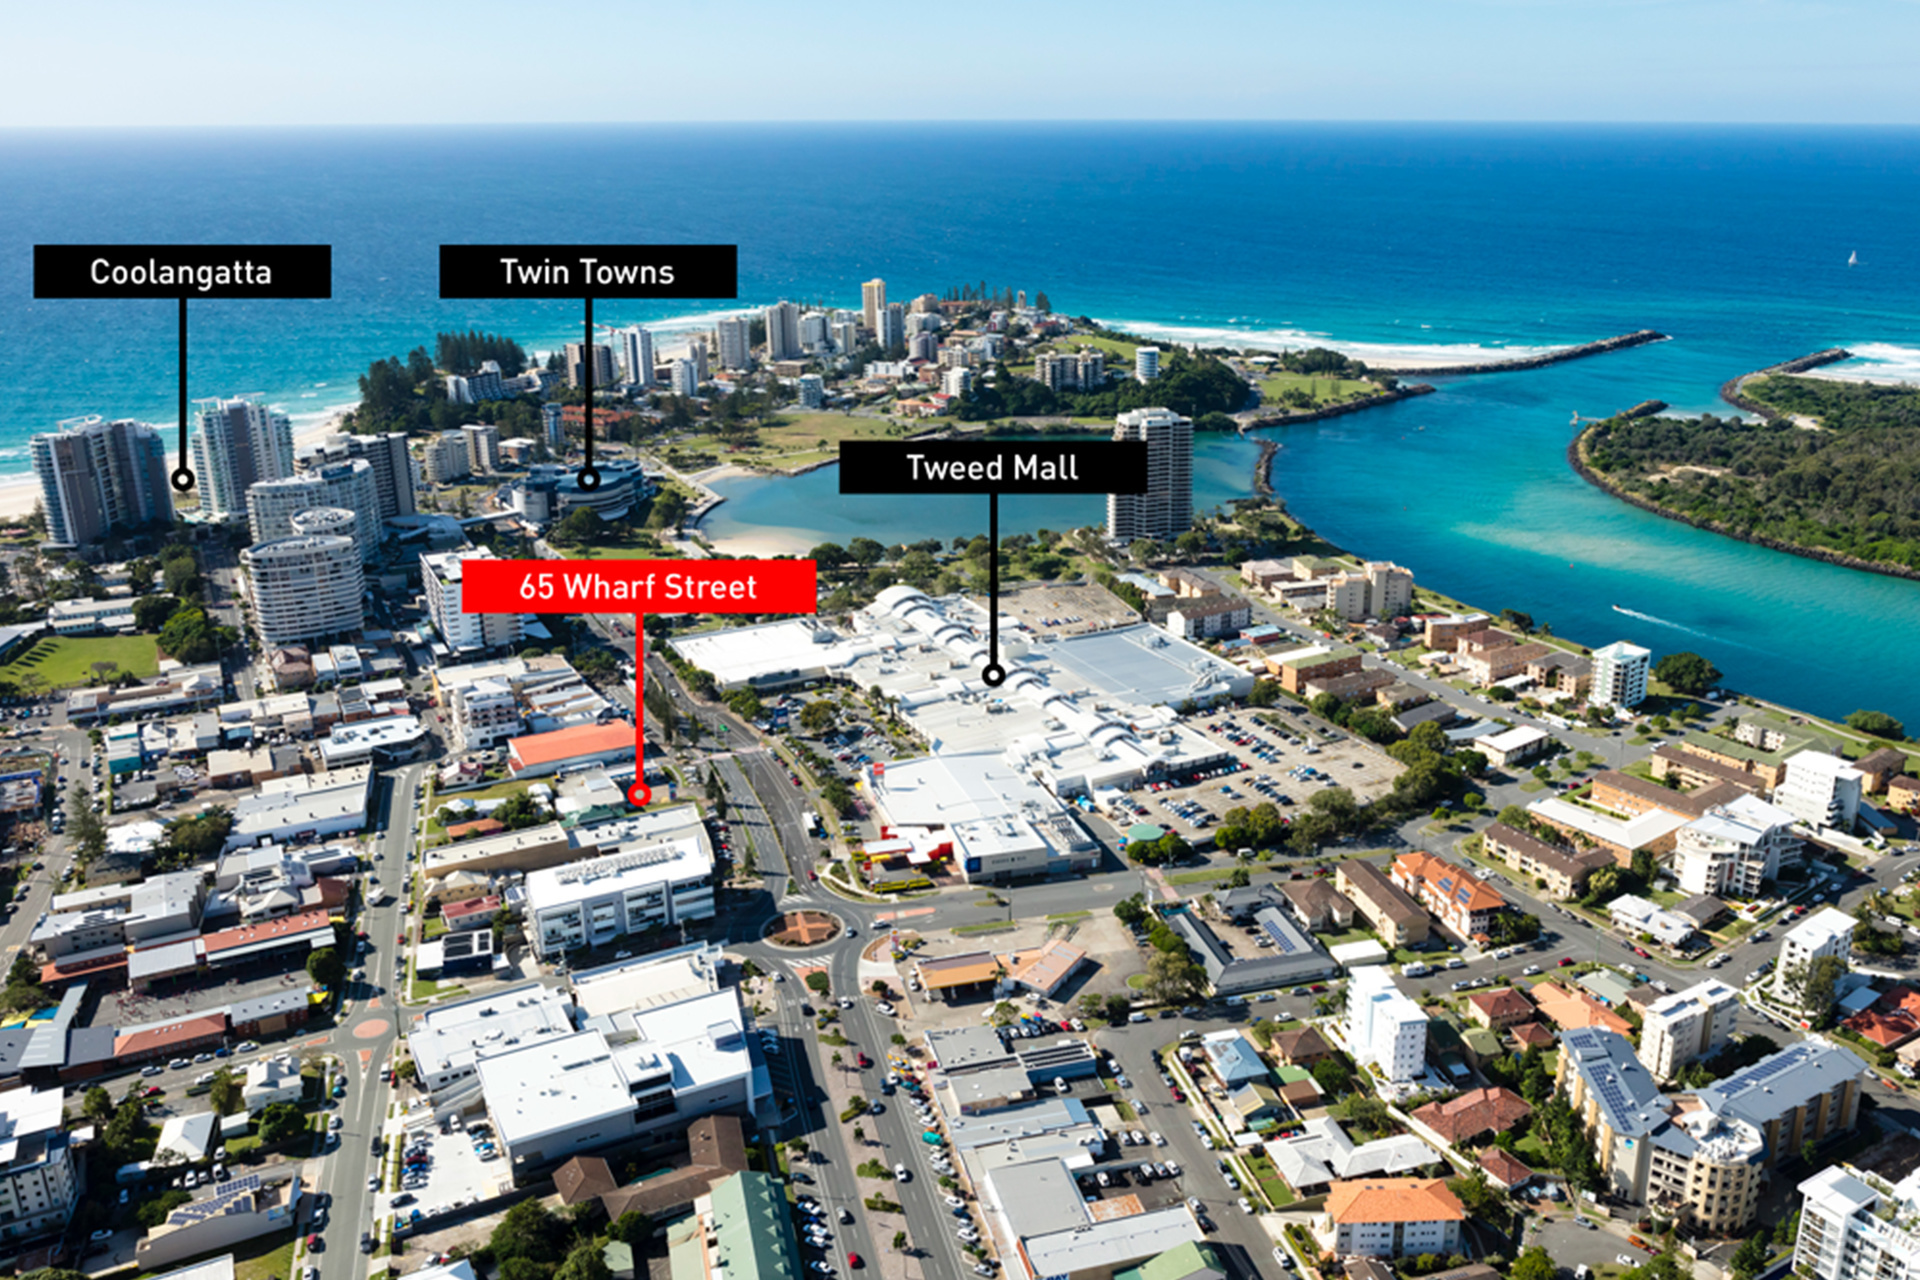 61-65 Wharf Street Tweed Heads